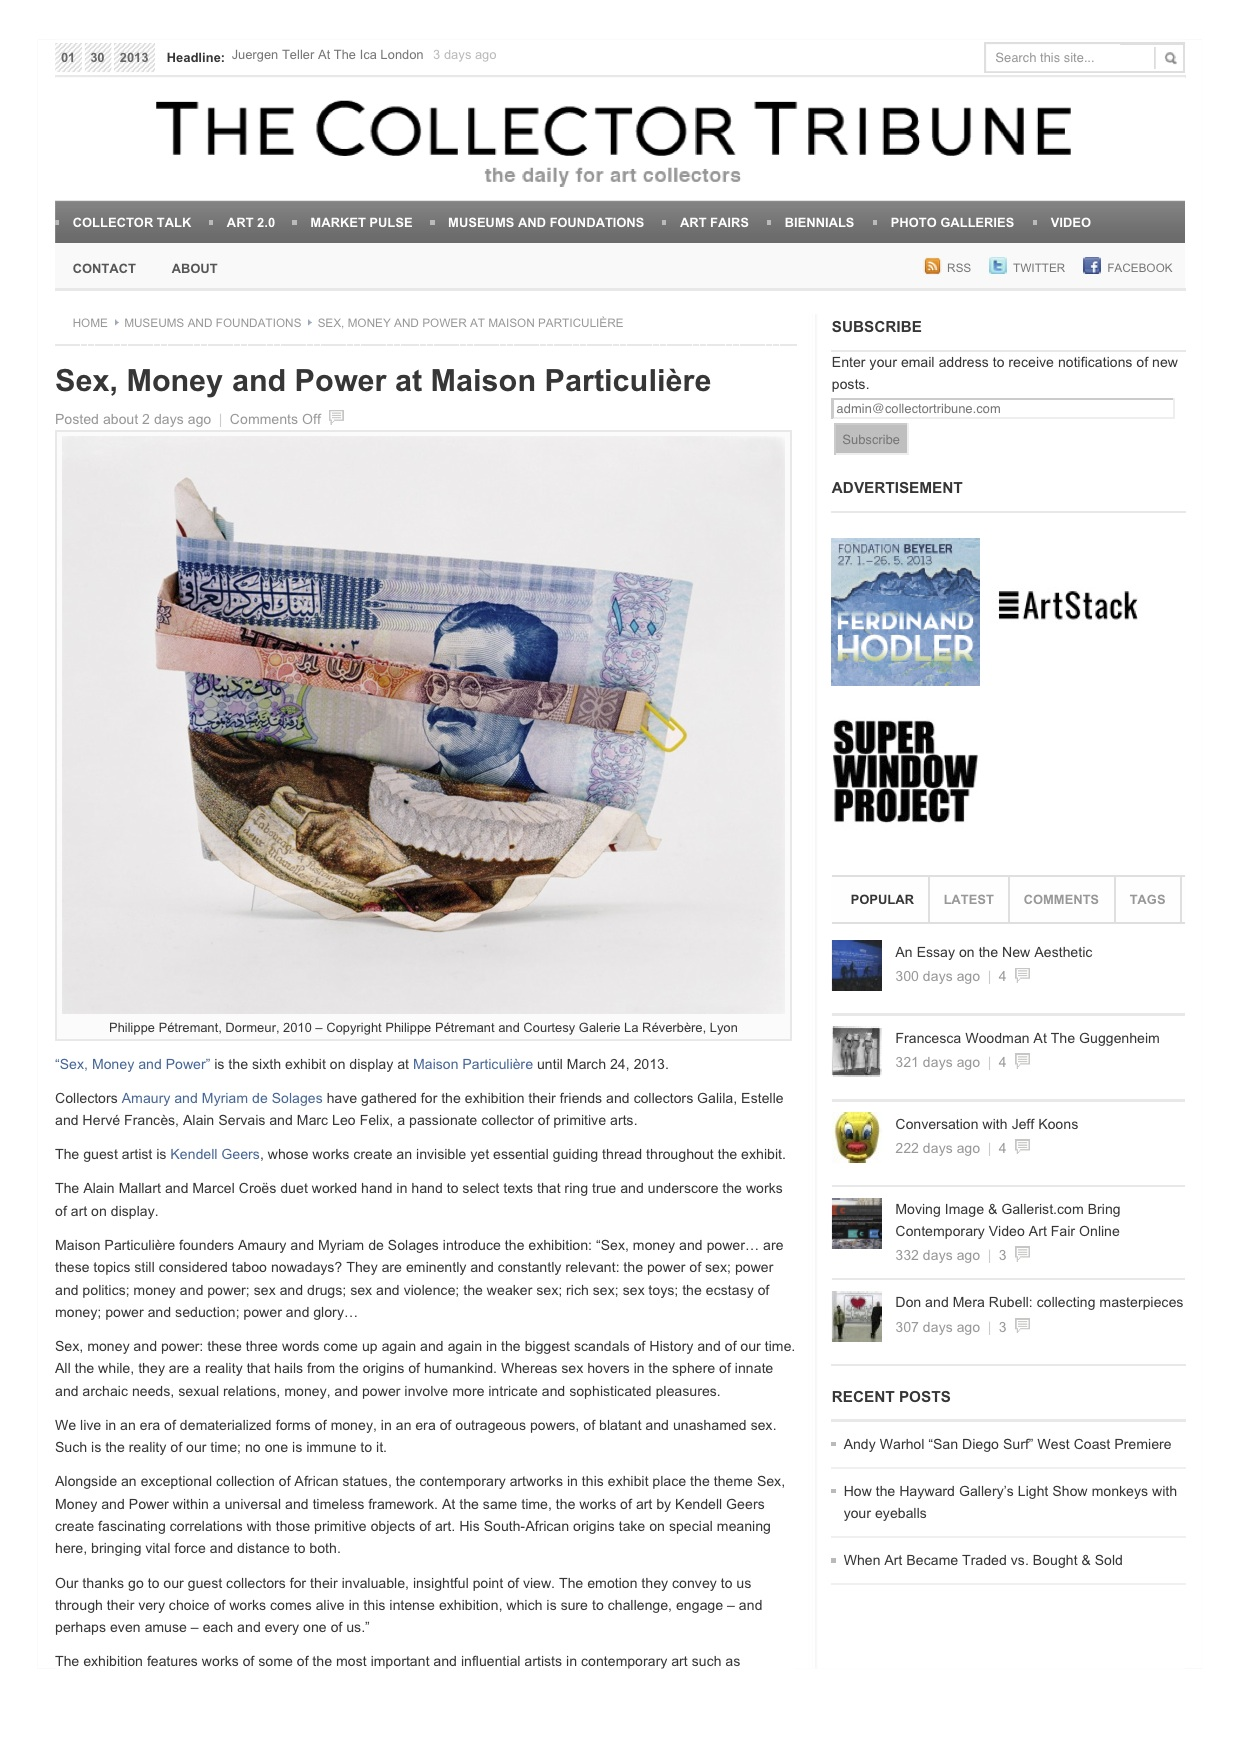 Sex_Money_and_Power_at_Maison_ParticuliAAAre__The_Collector_Tribune_glissees